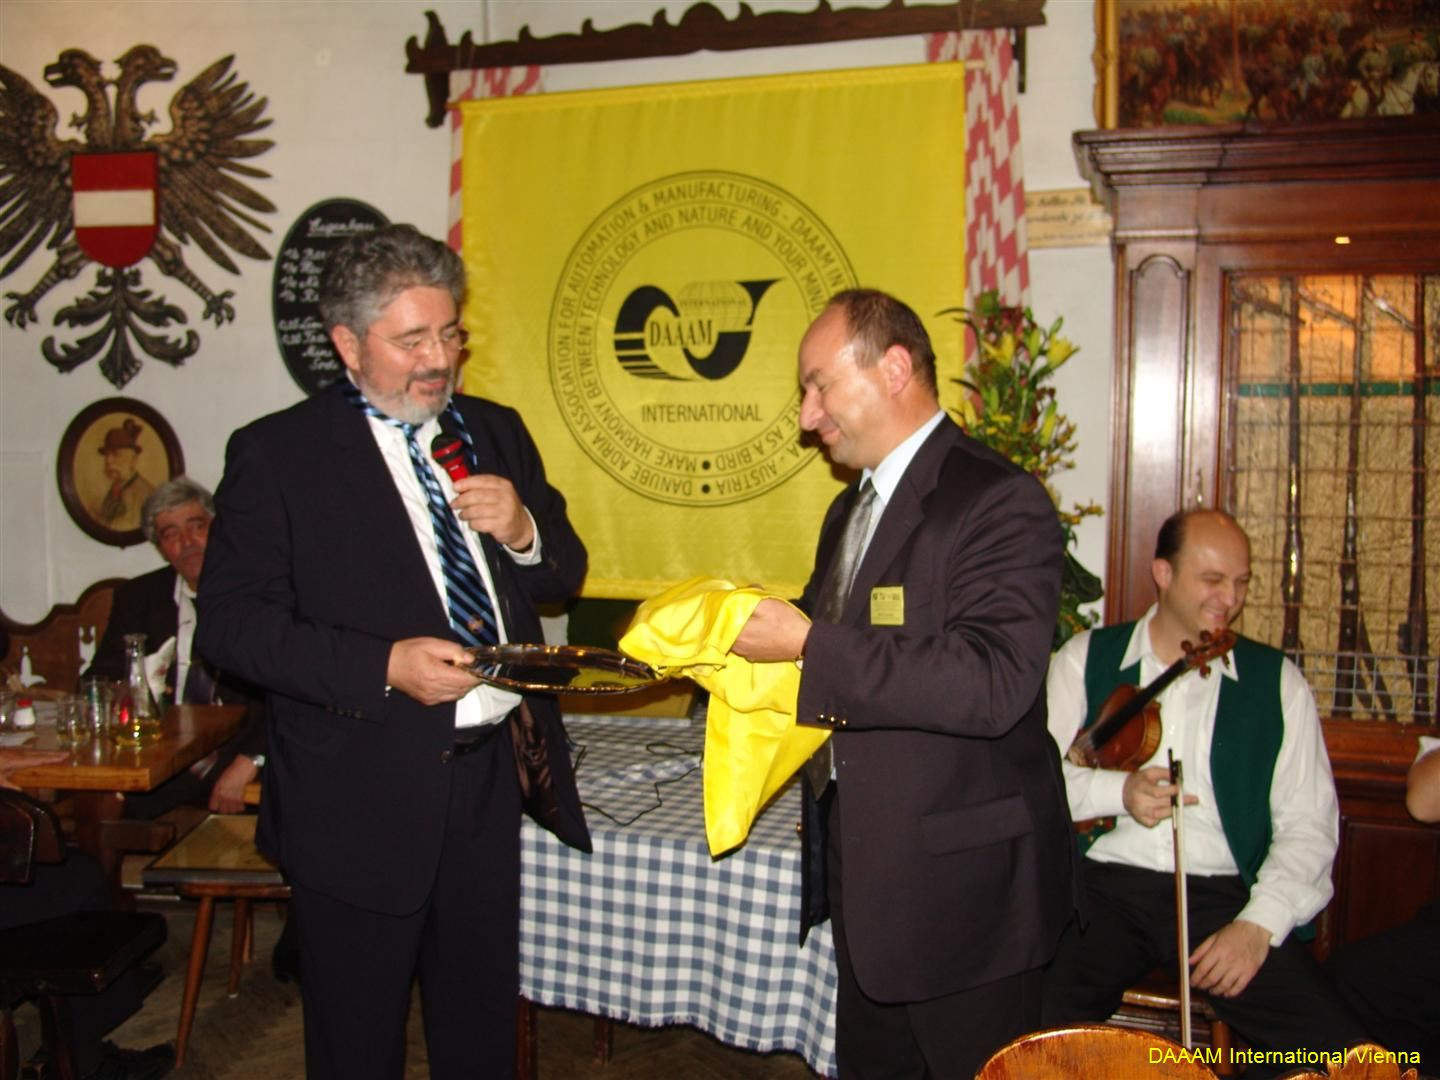 daaam_2006_vienna_dinner_recognitions_lectures_088